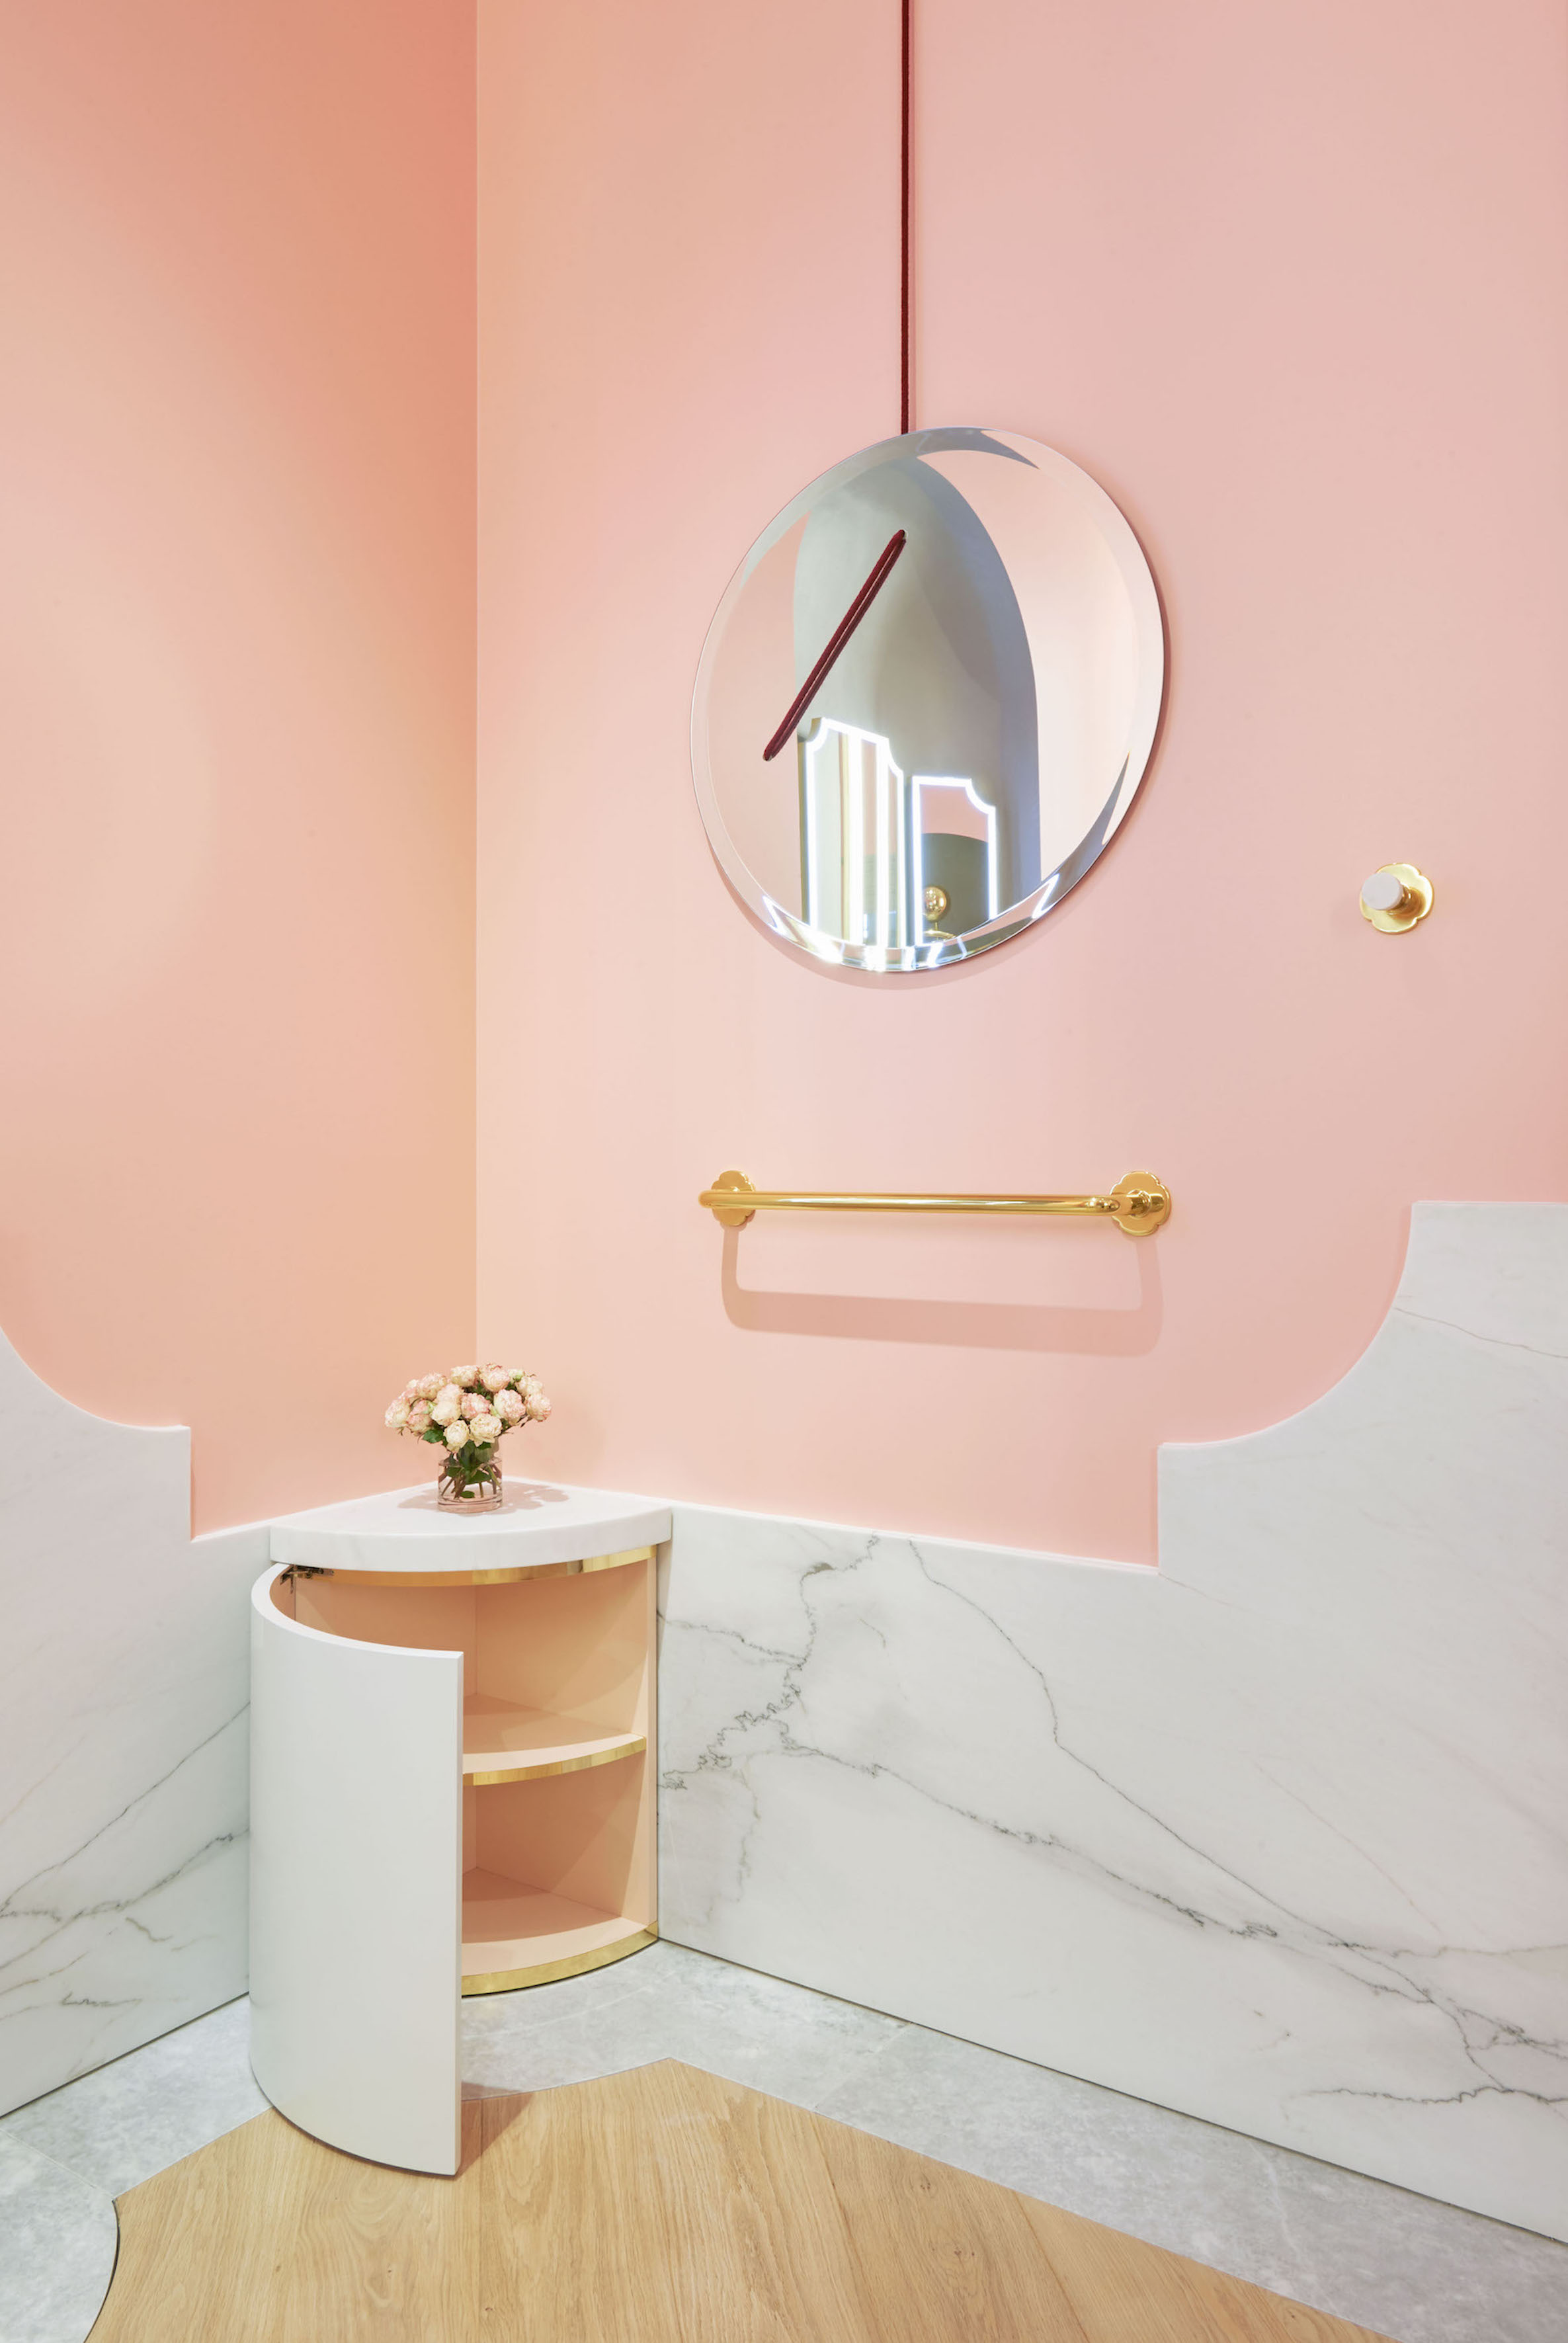 Corner unit, robe hook & towel rail - in lacquered wood, brass and marble*round mirror by Marie Beltrami